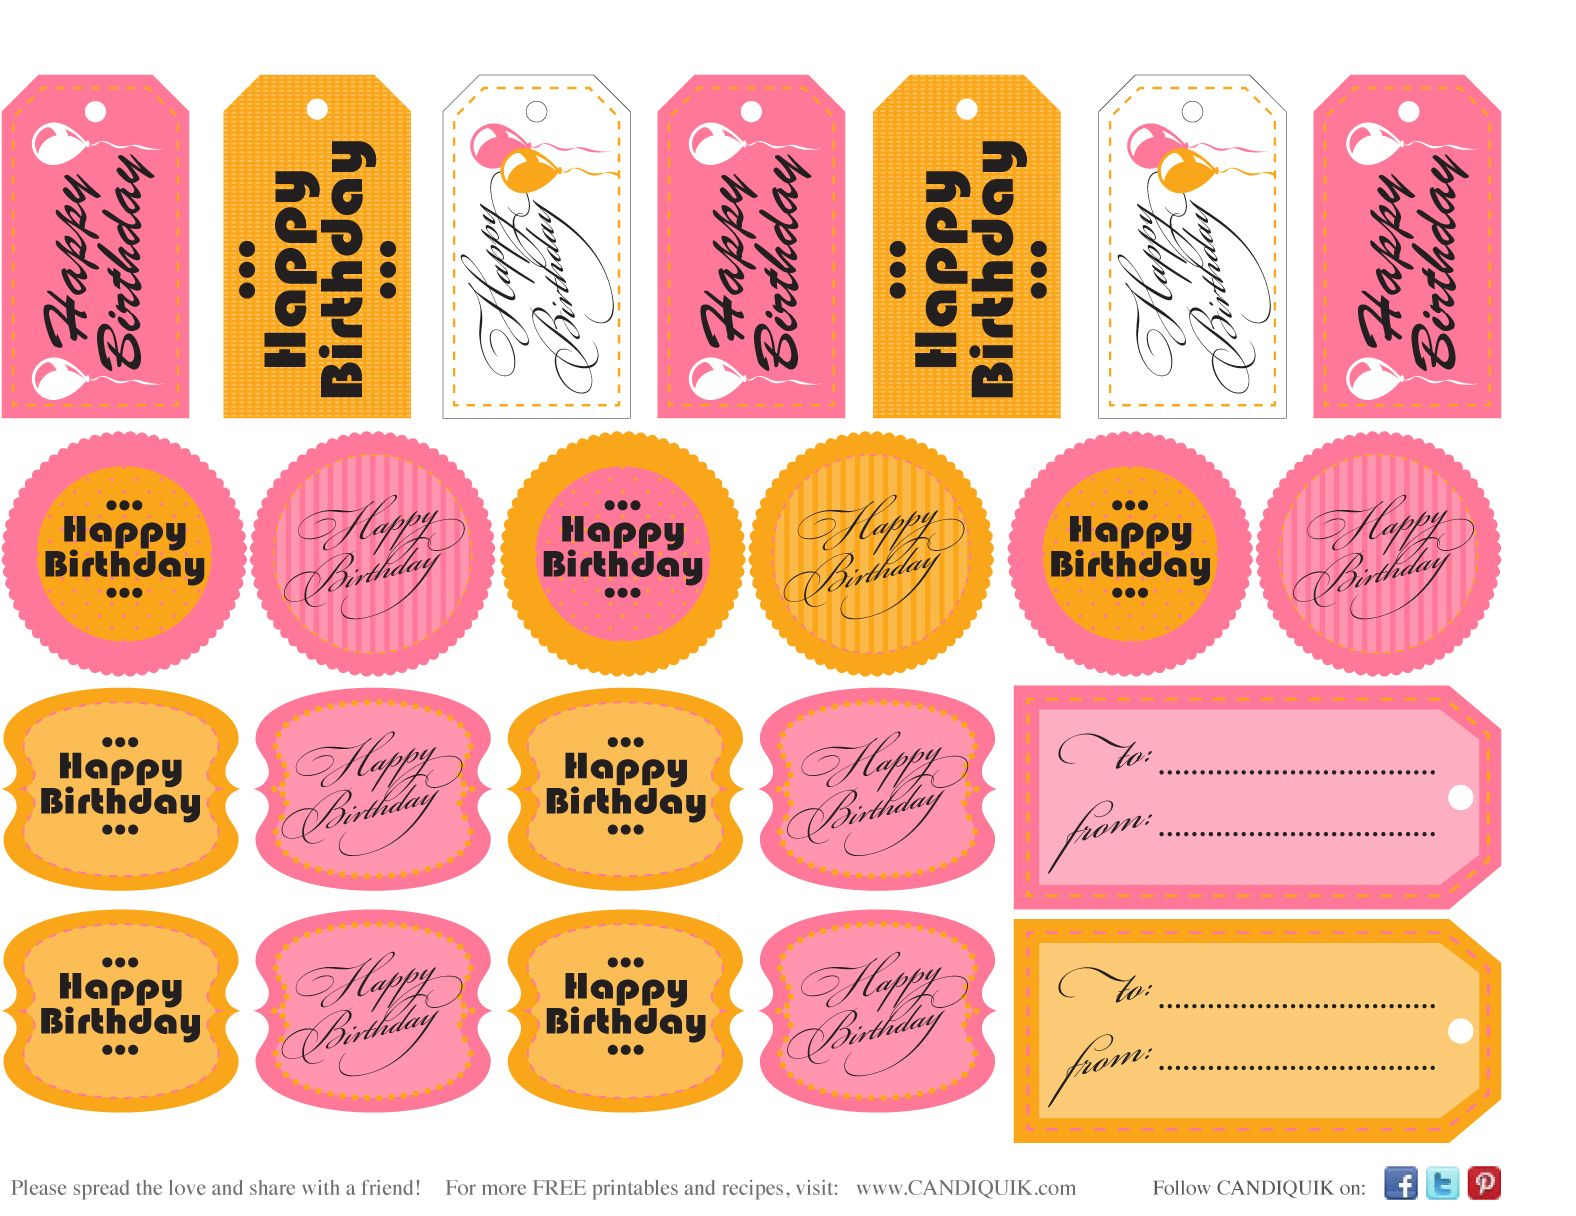 Birthdaygifttagspinkg 1 576 1 216 pixels card making free printable gift or treat tags for birthday from miss candiquik negle Image collections